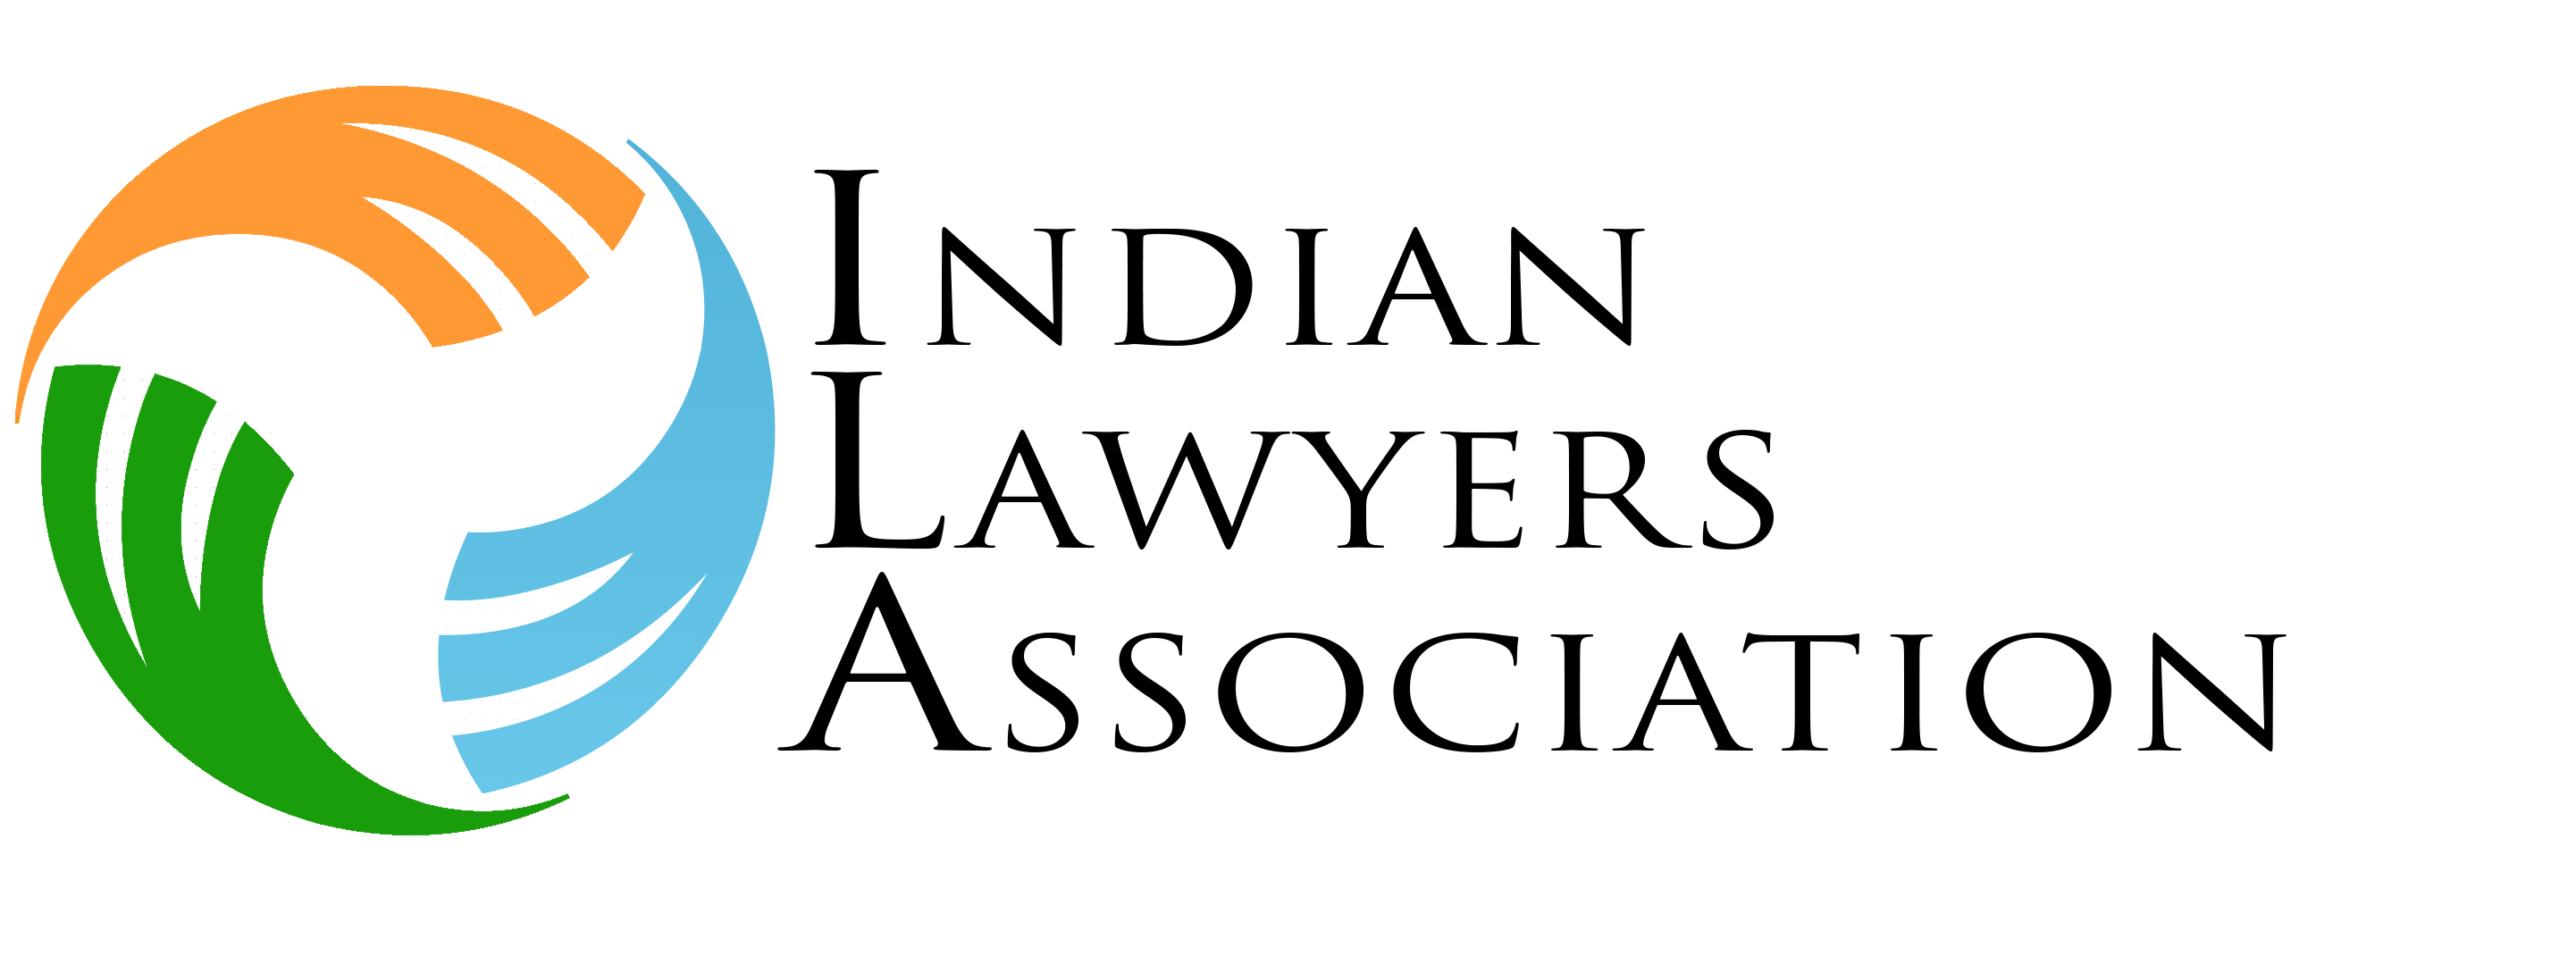 Indian Lawyers Association (ILA)